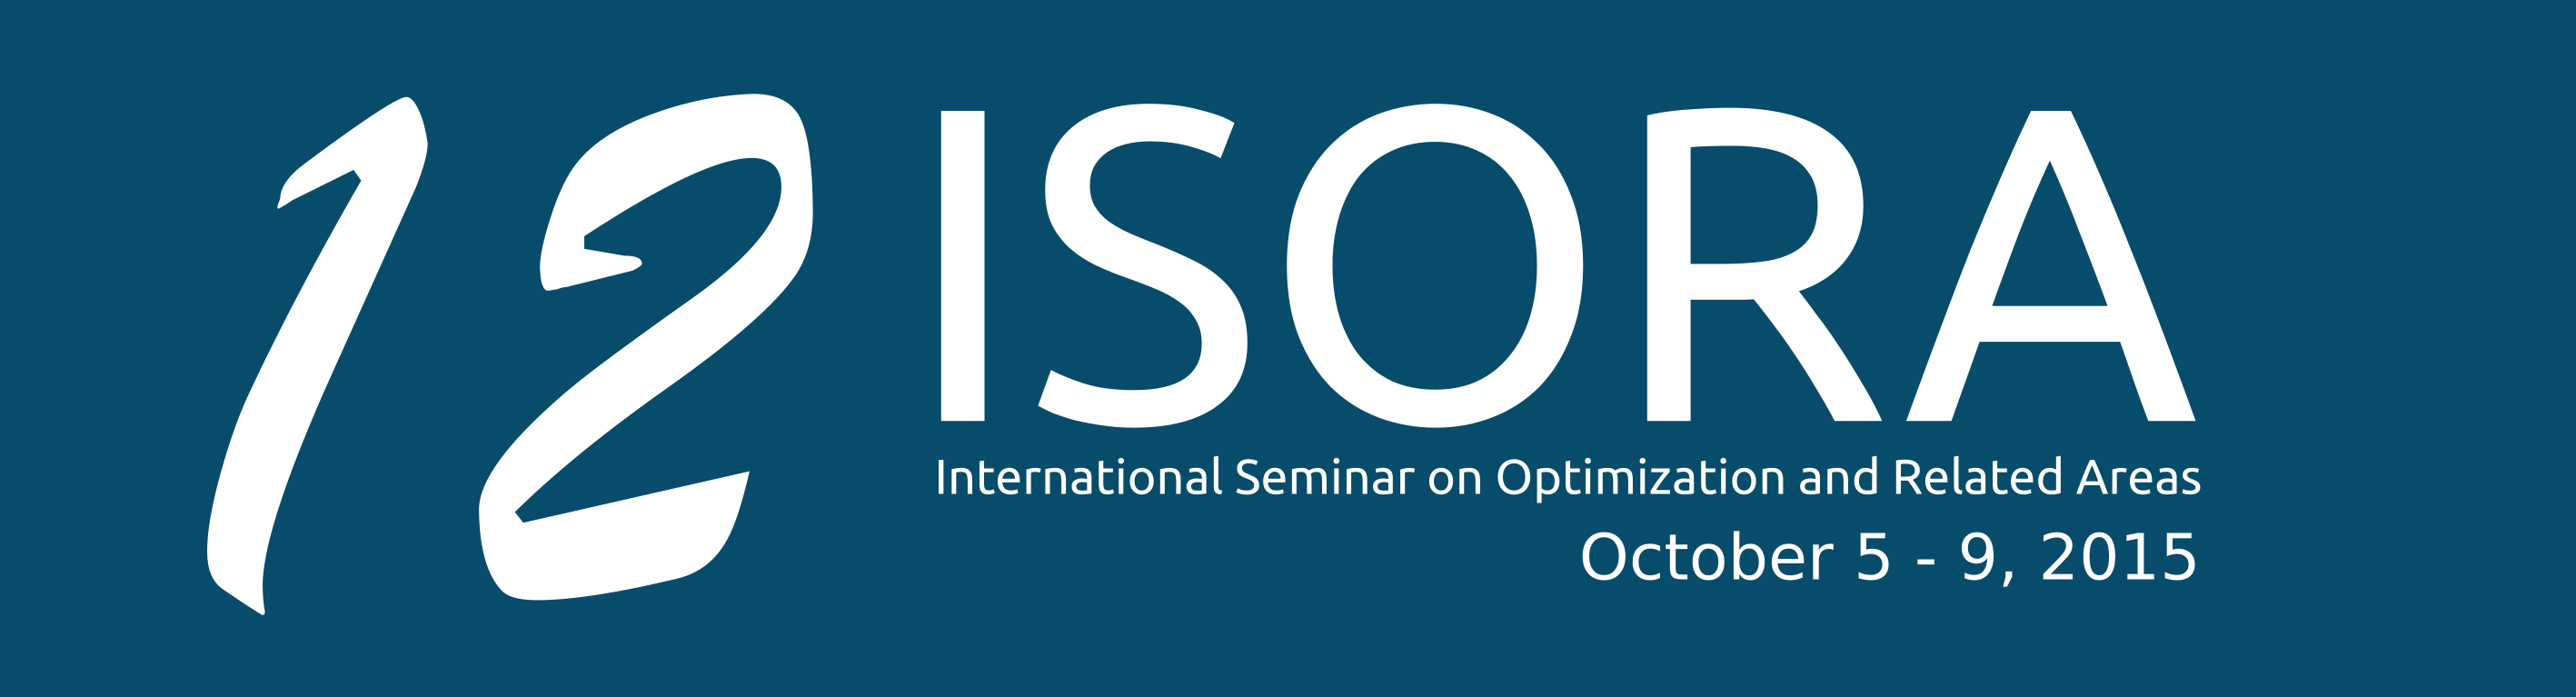 ISORA 2015: International Seminar on Optimization and Related Areas